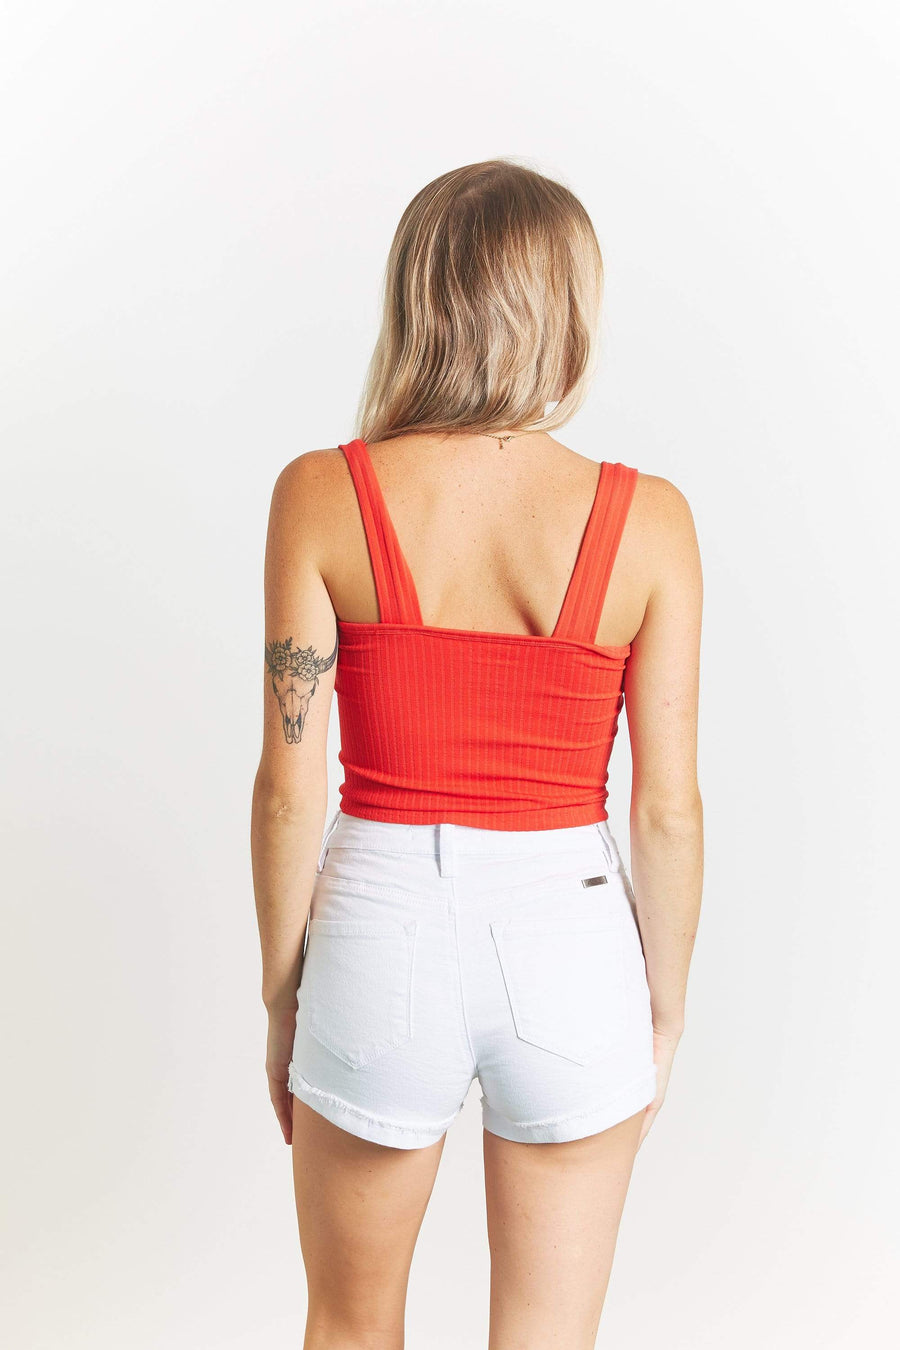 SUZETTE COLLECTION Womens RIBBED SQUARE NECK CROP TOP